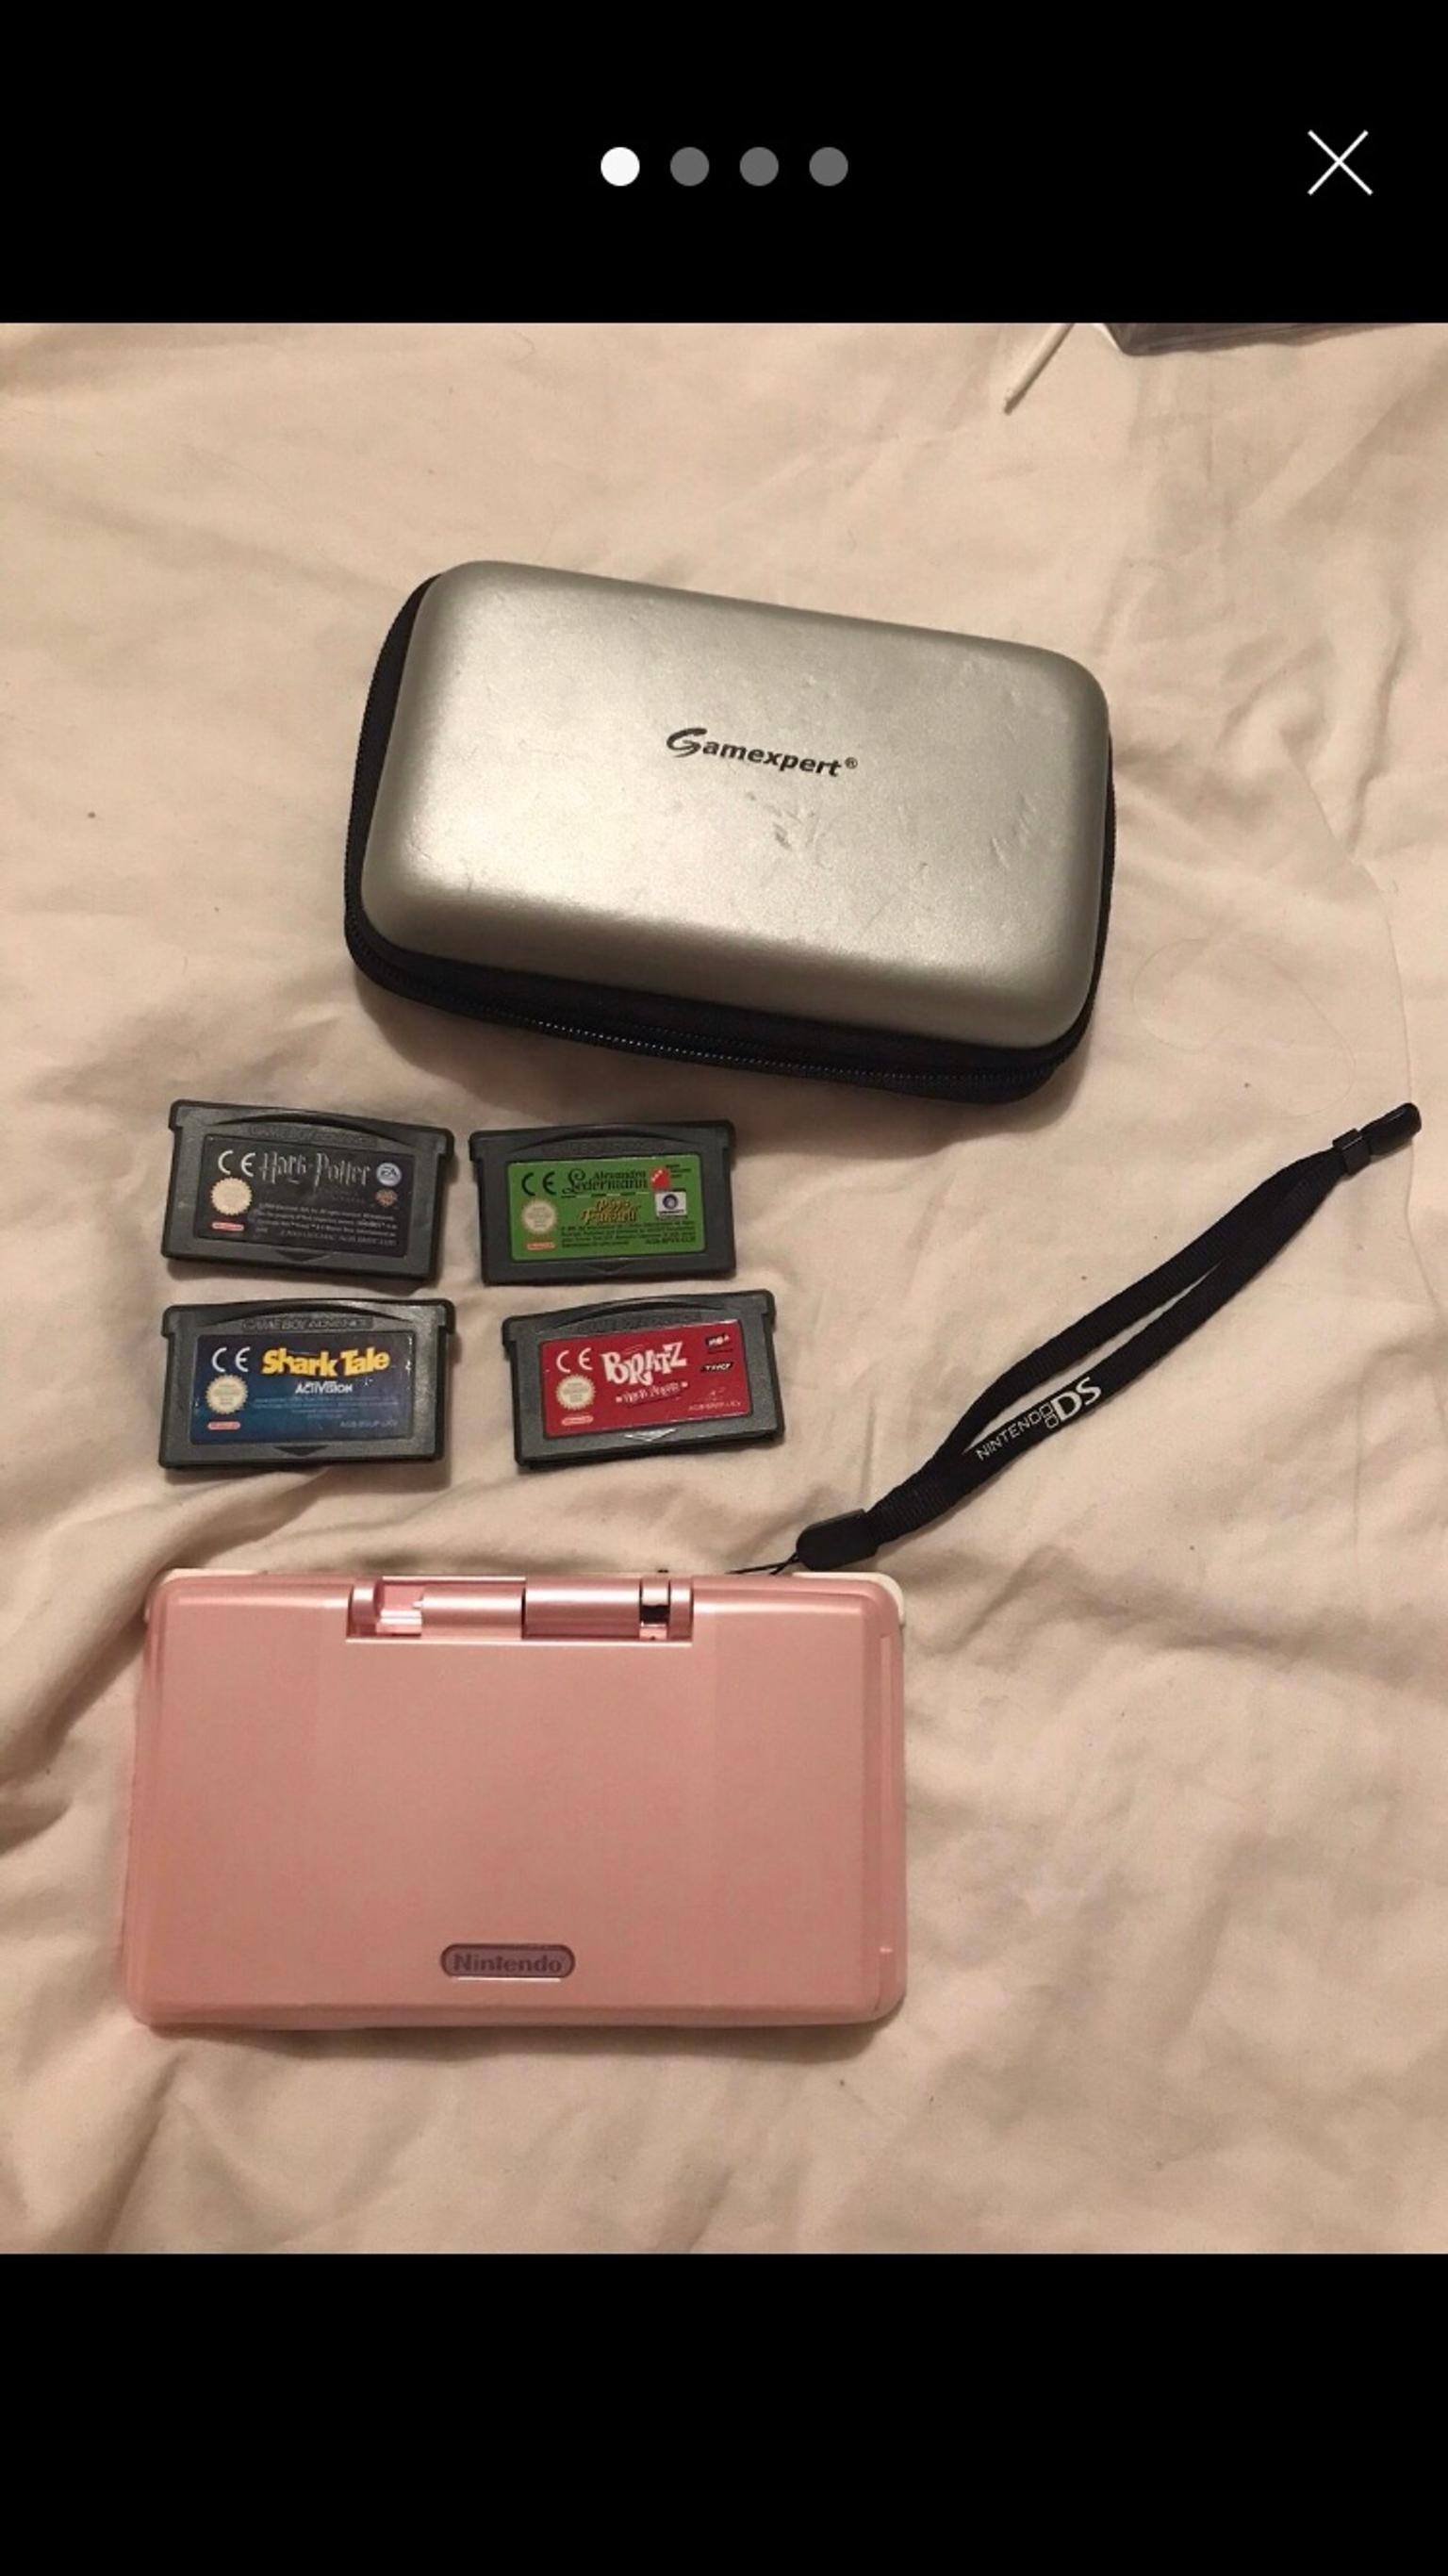 Nintendo DS with 4 game boy games